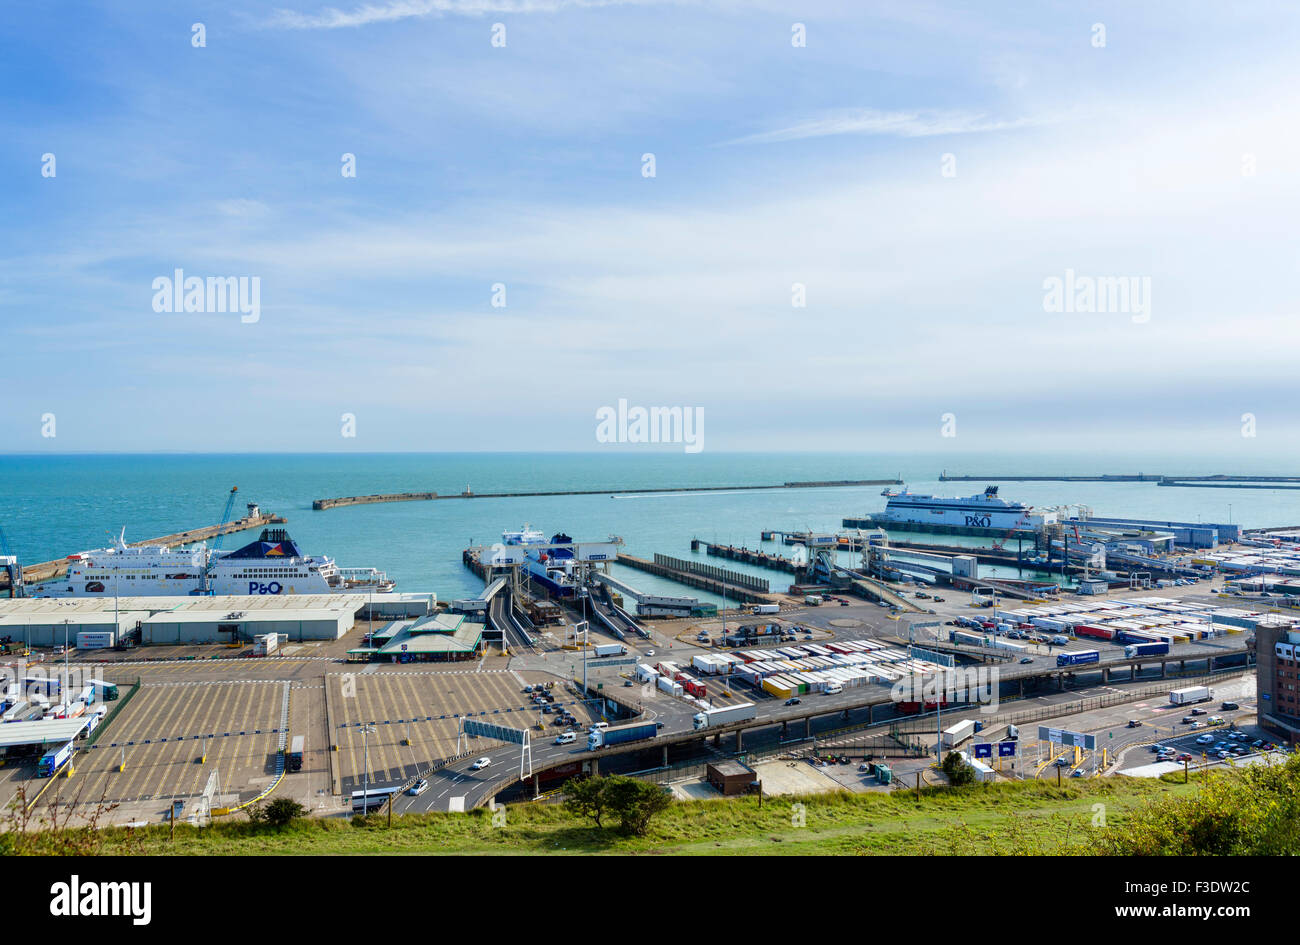 The Port of Dover viewed from the clifftops, Kent, England, UK - Stock Image